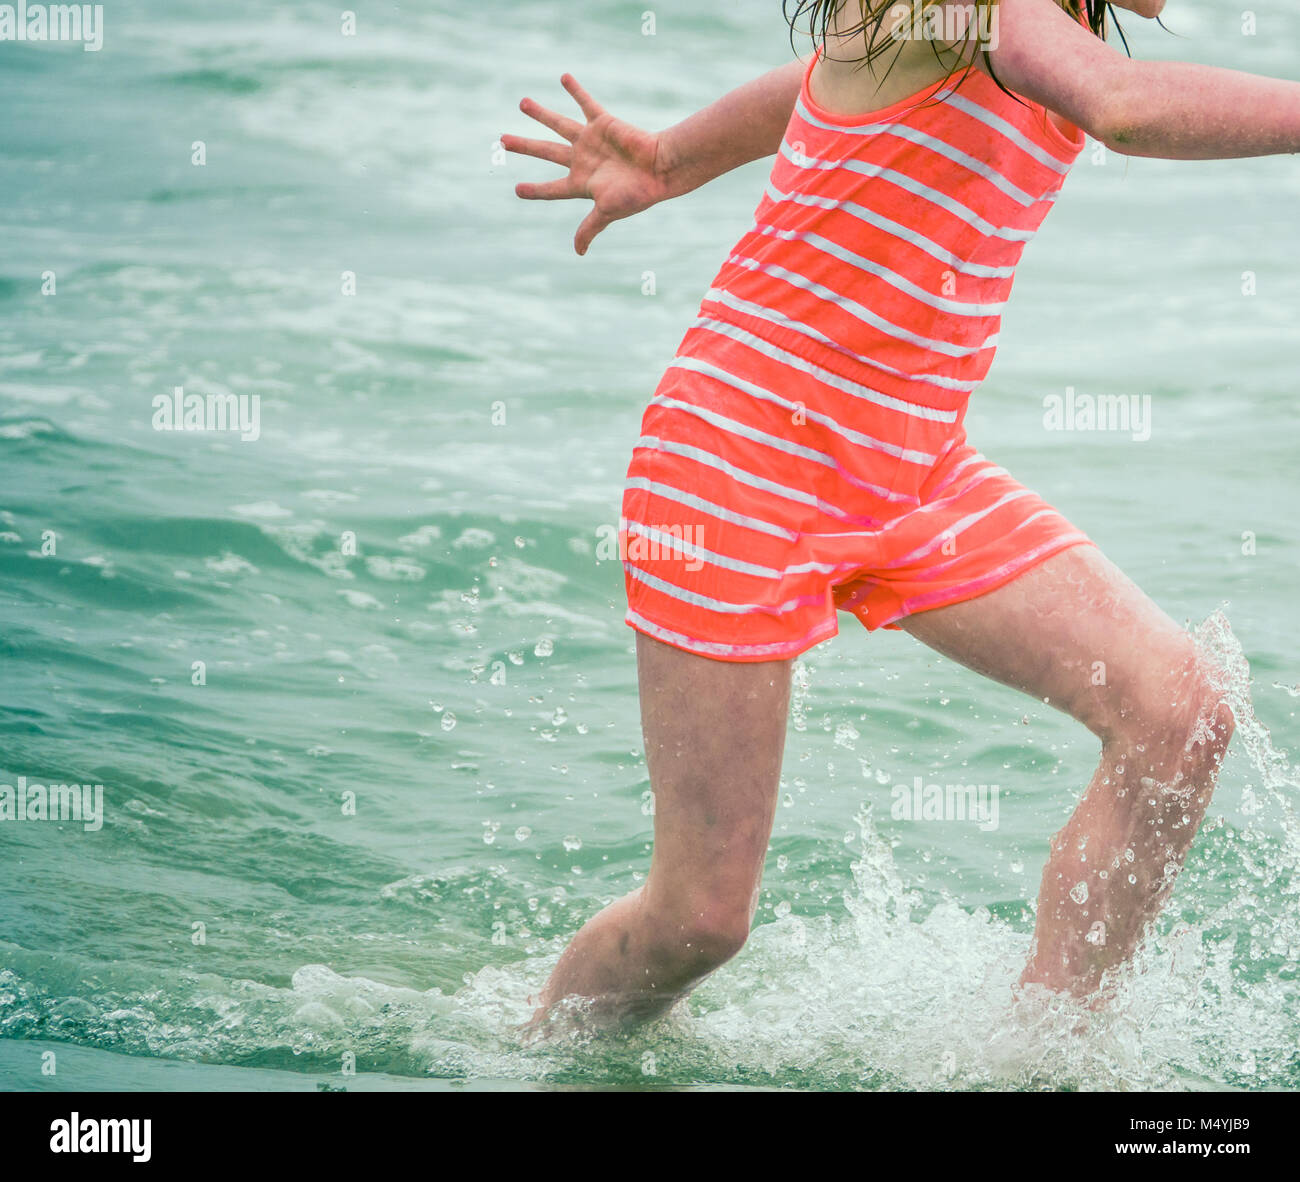 Child Playing In The Waves Stock Photo